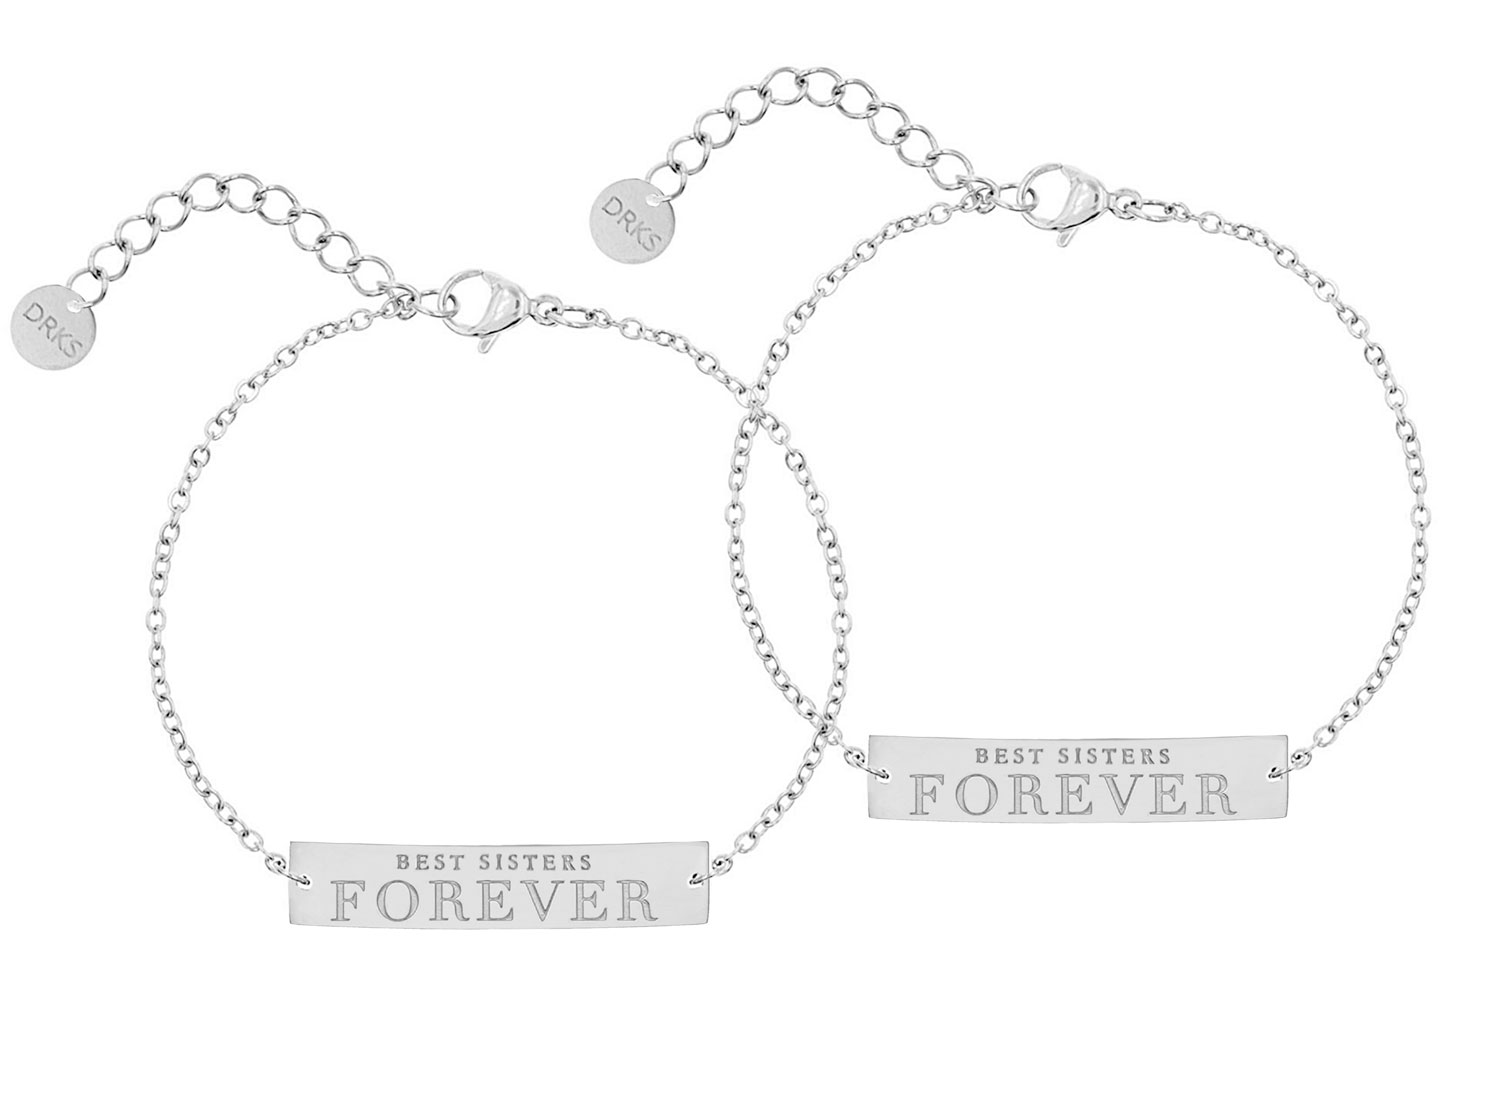 Best sisters forever armband